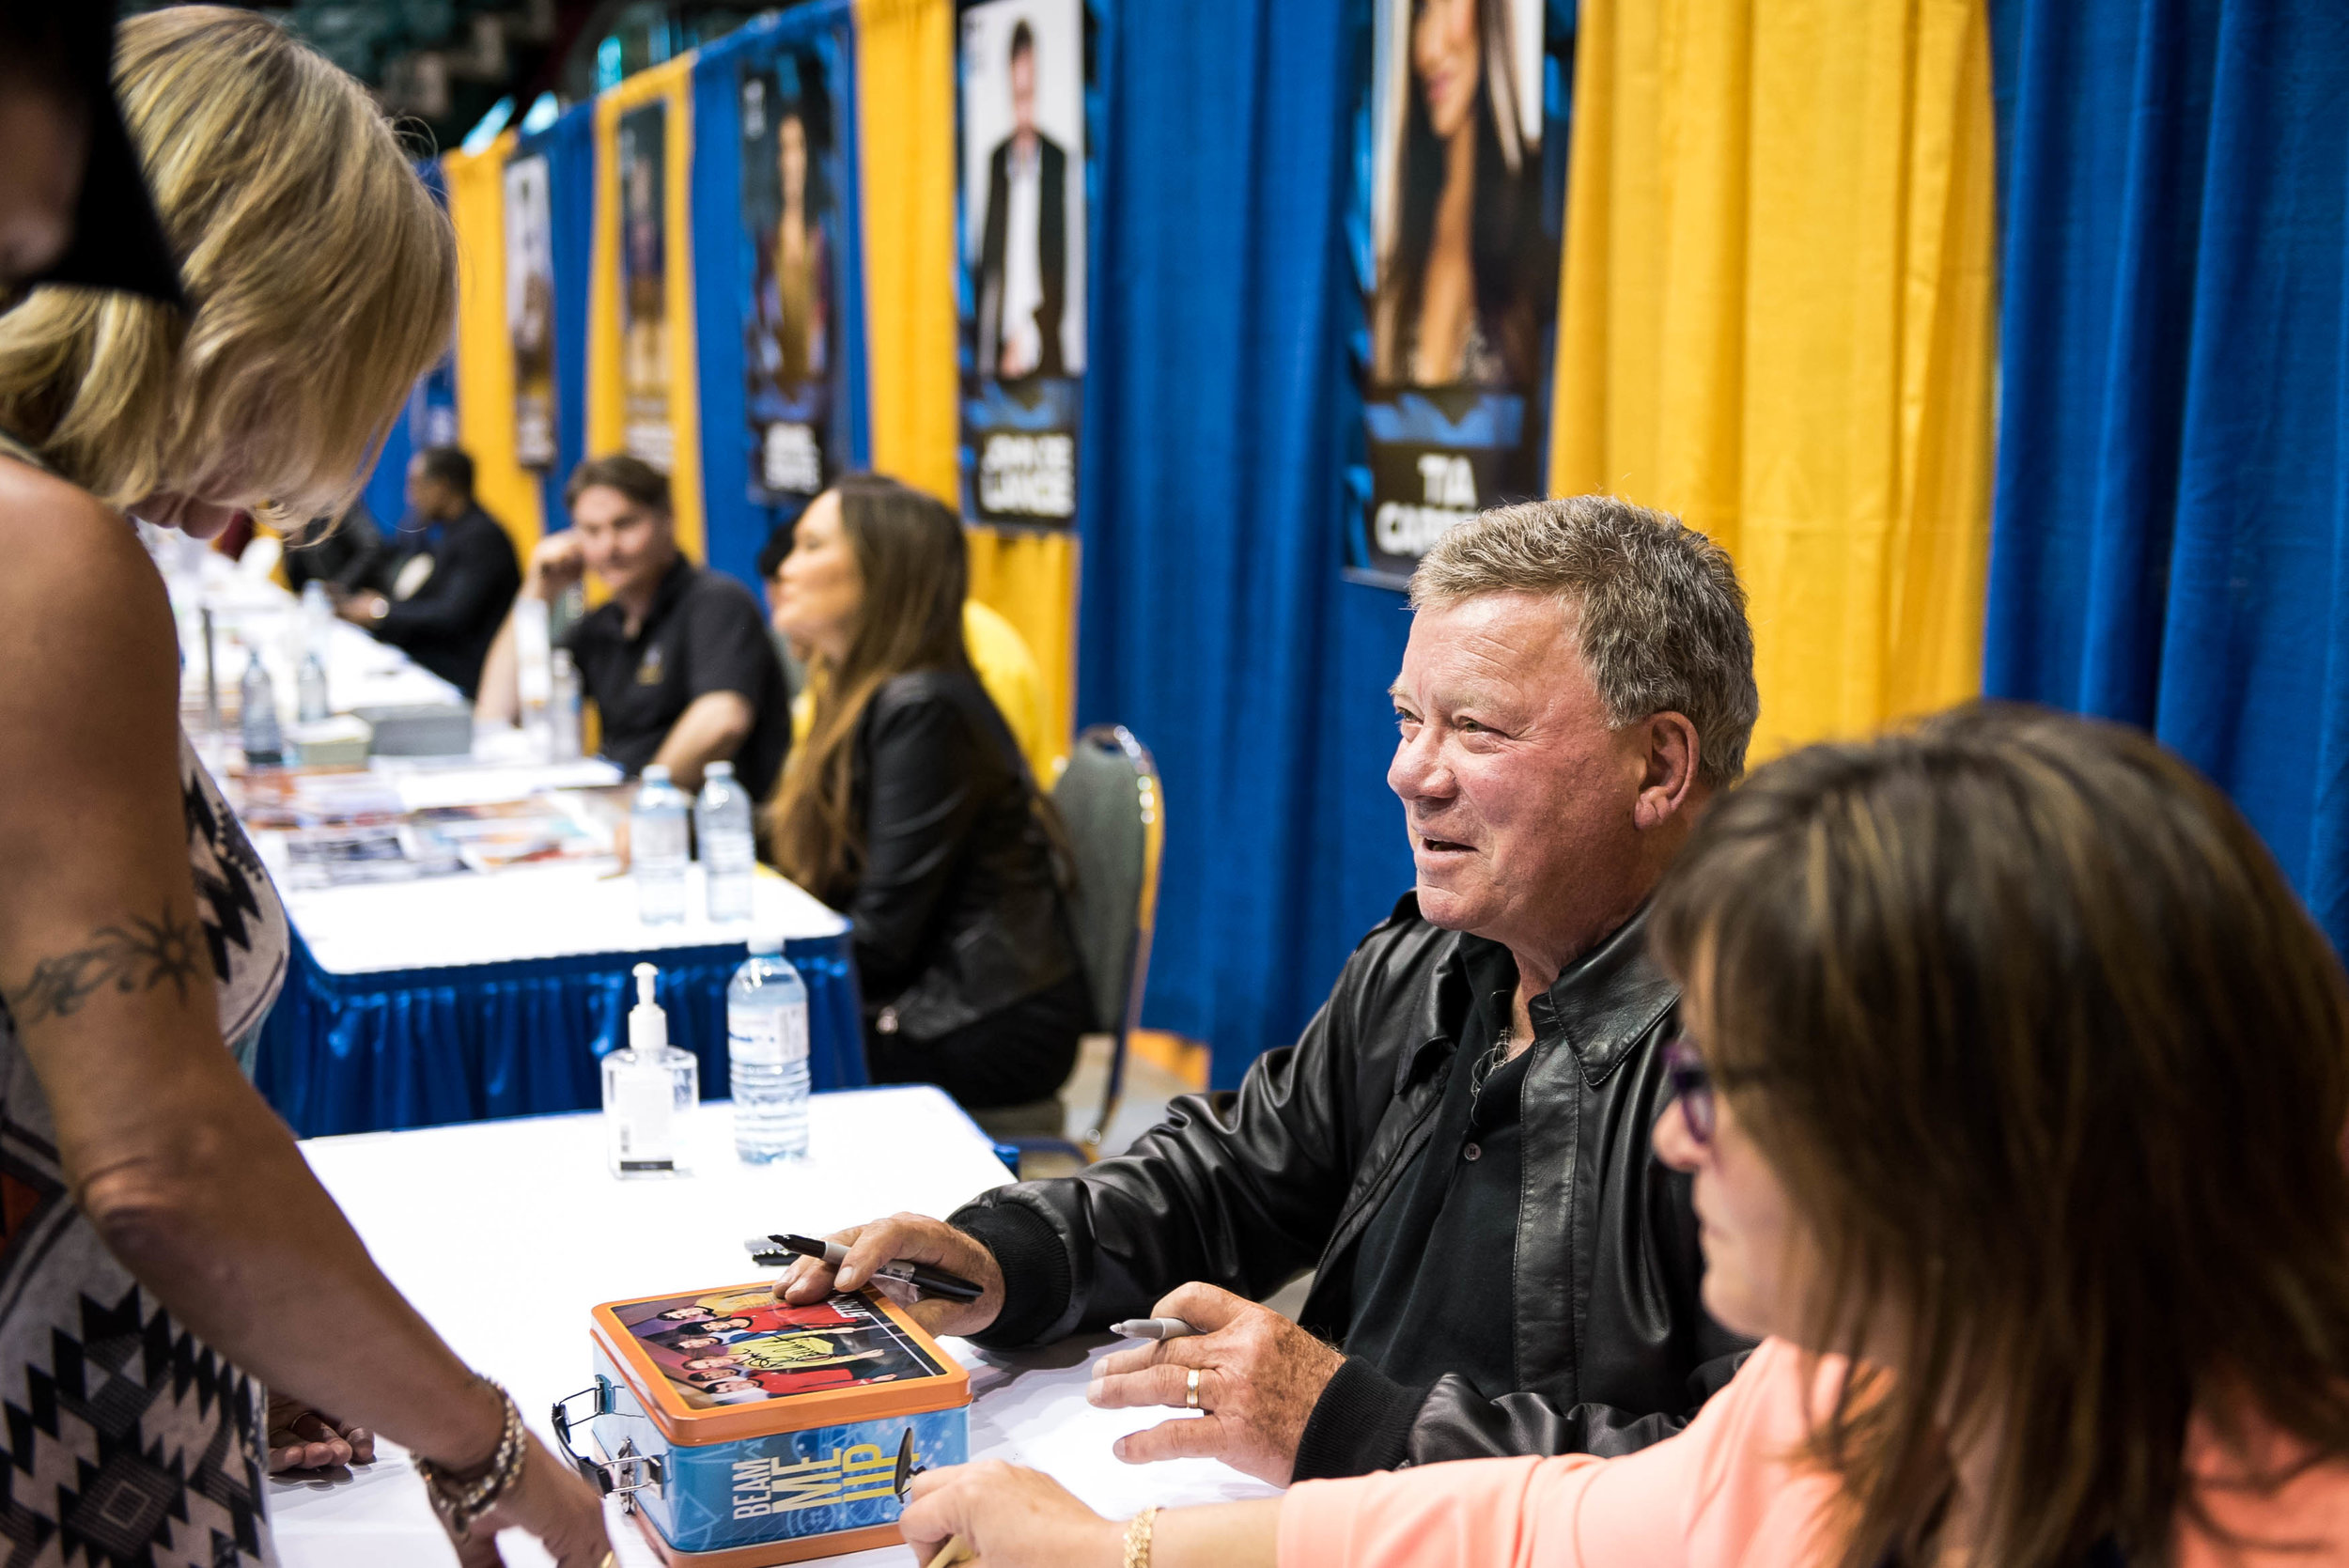 submitted photo: William Shatner at the first ever Northern FanCon in 2015. Organizers worked for a year leading up opening the doors of the event